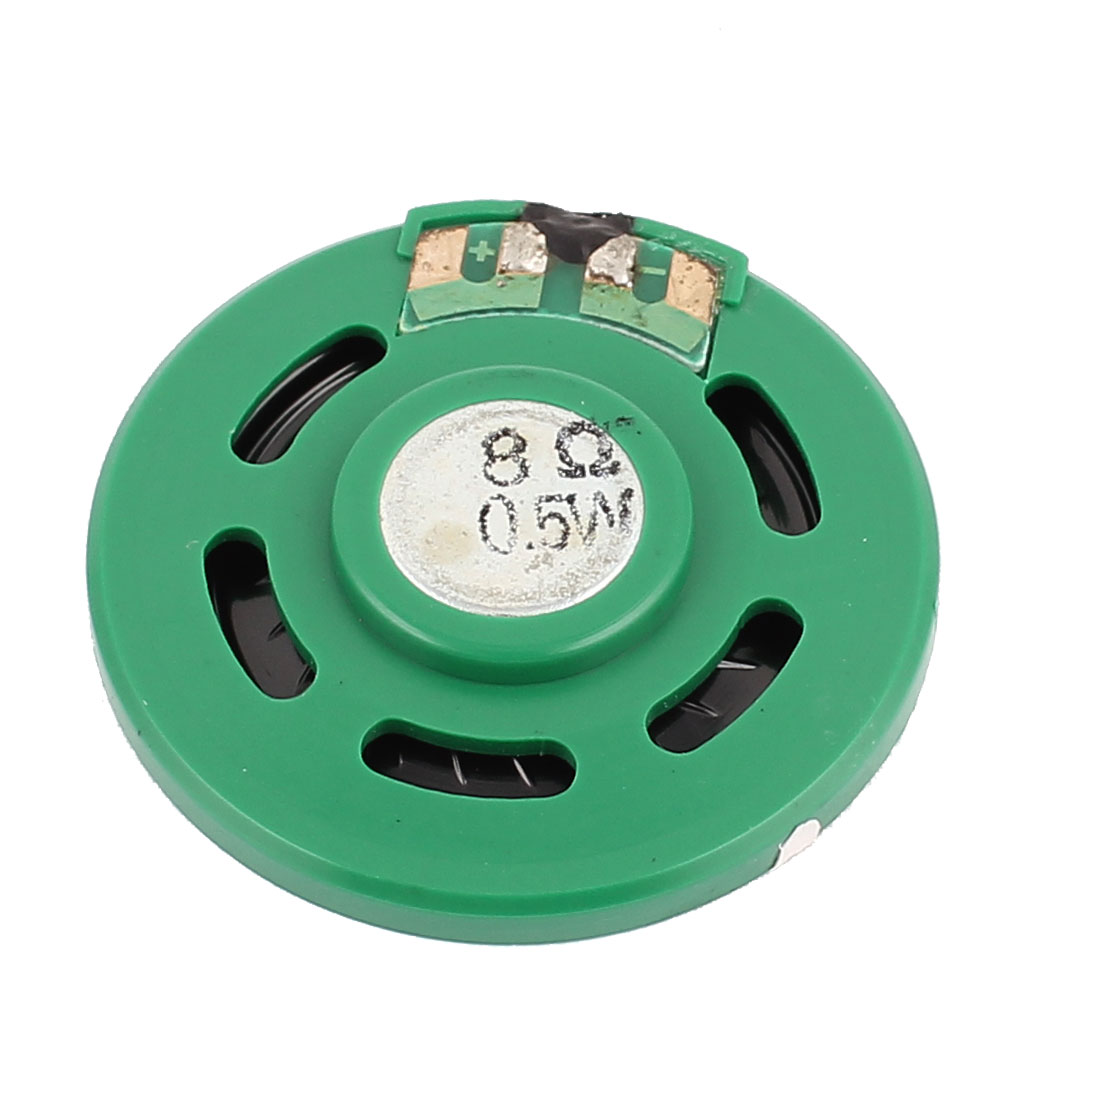 40mm x 17mm 8 Ohm 0.5W Green Shell Internal Magnet Speaker Horn Loudspeaker